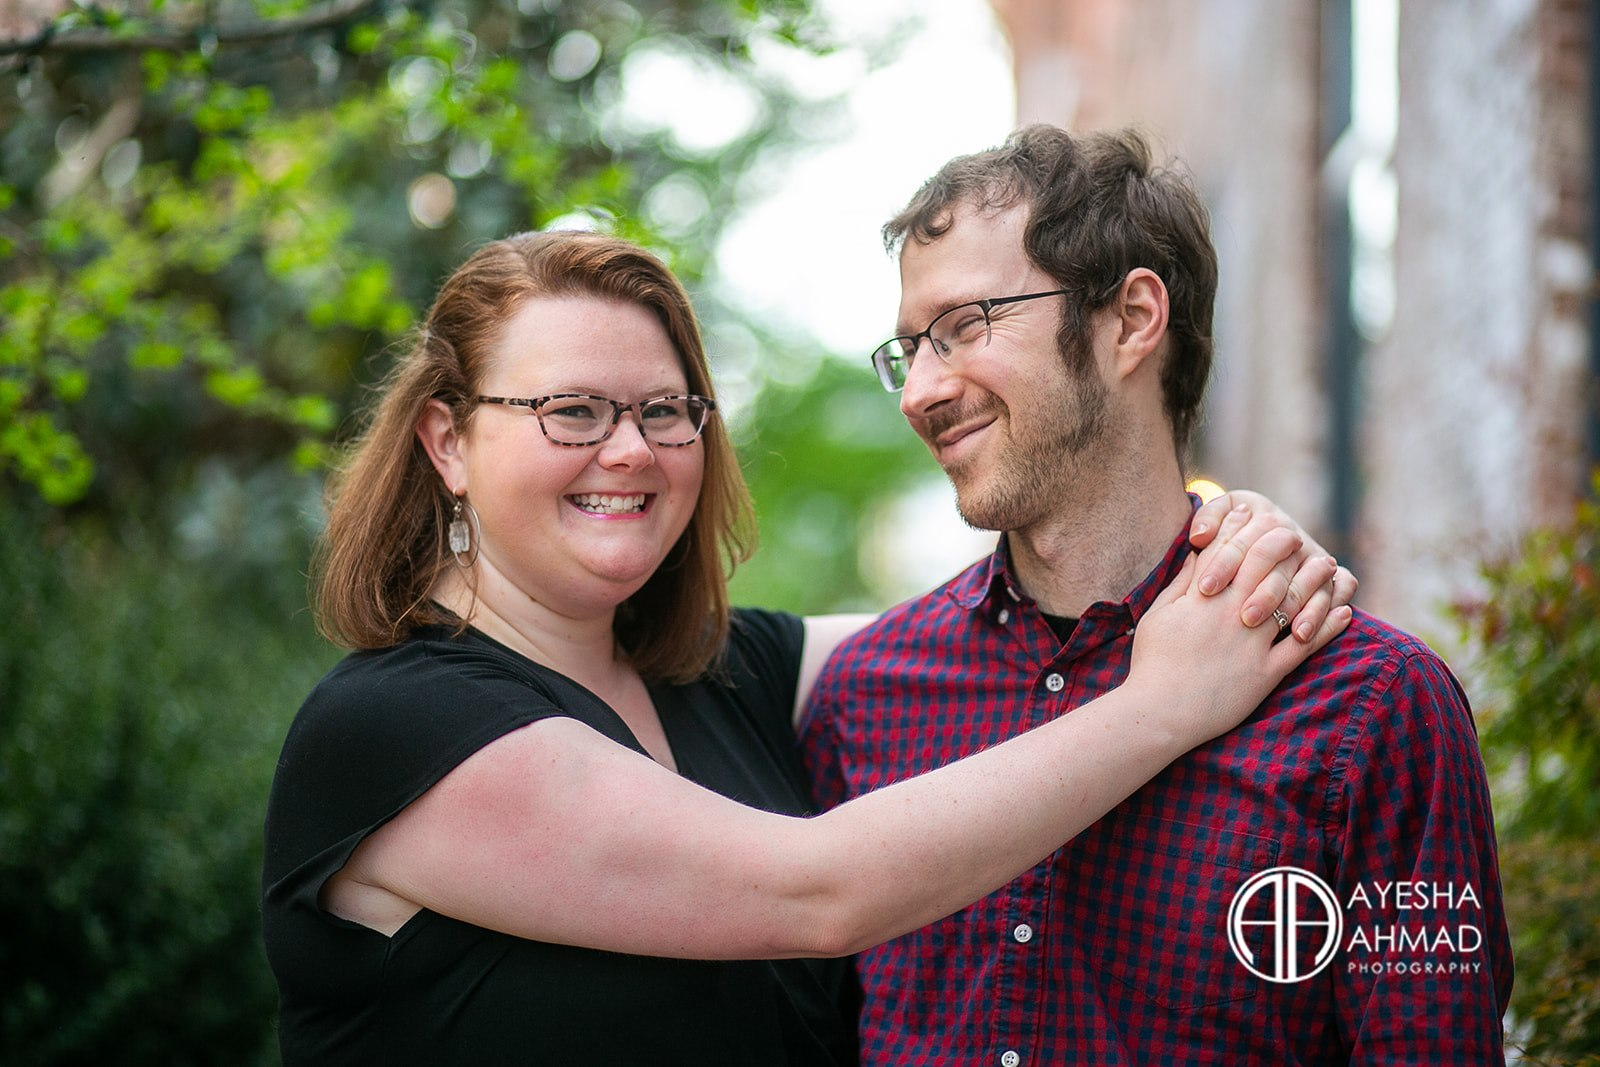 Jen and cameron embrace during couples session in Downtown Charlottesville Ayesha Ahmad Photography